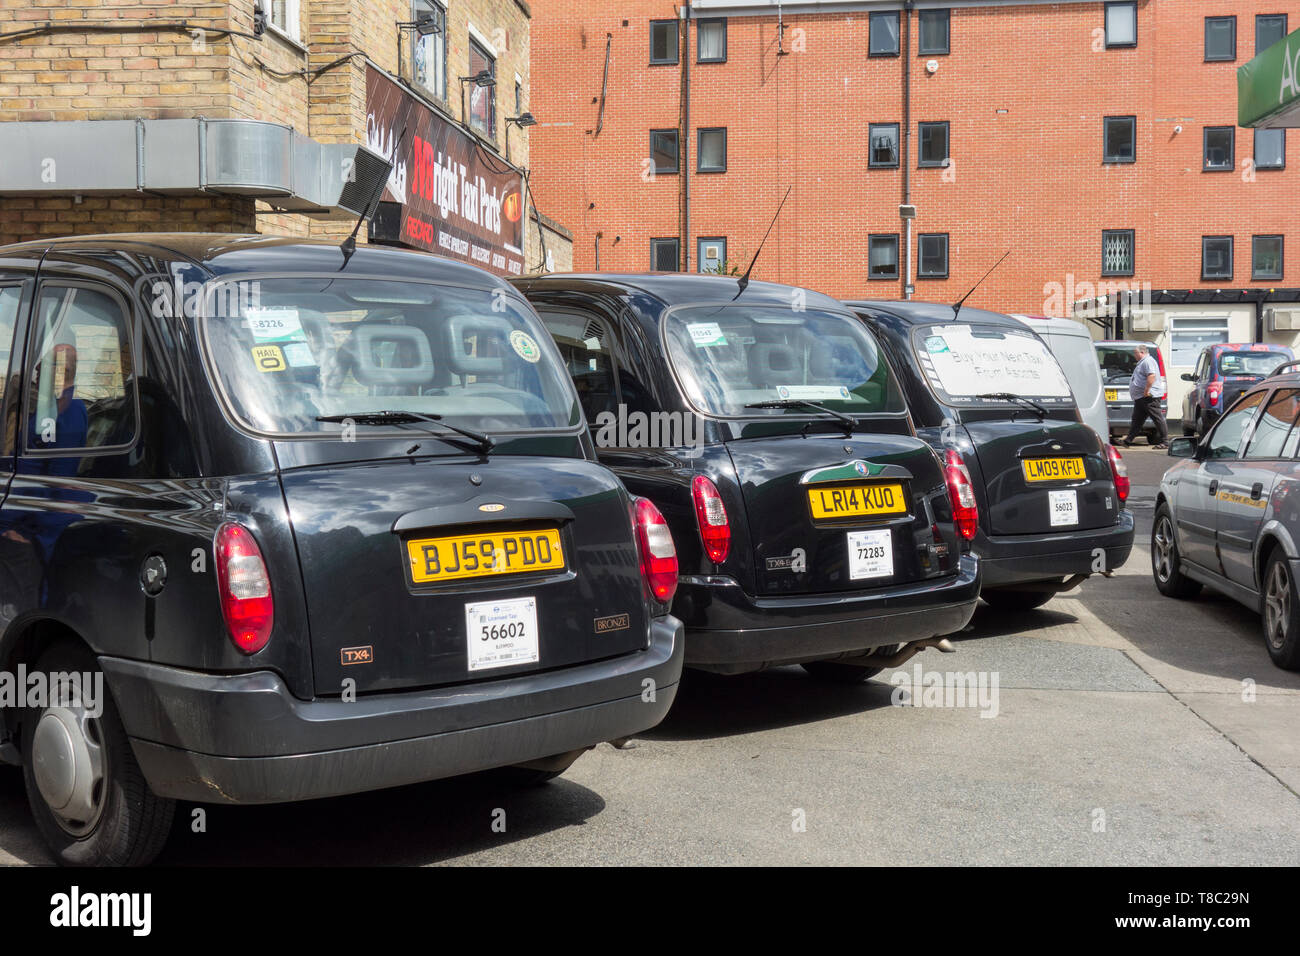 A row of London Black taxicabs in a garage in Southwark, London, UK - Stock Image